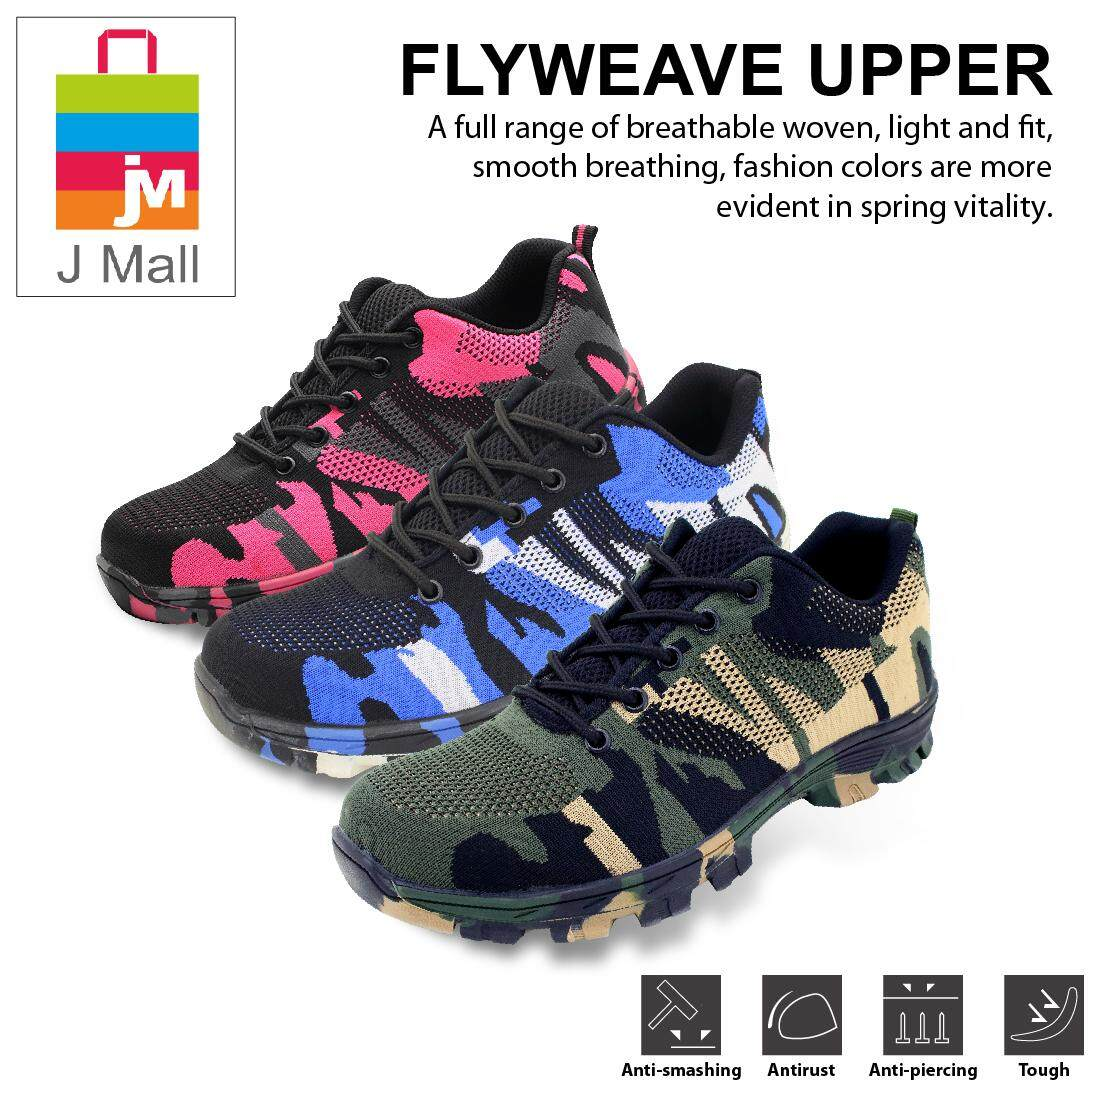 J MALL Fashion Worker Low-Cut  Steel Toe Cap Work Safety Shoes (Flyweave Fabric) 526 - Army Green / Blue / Pink